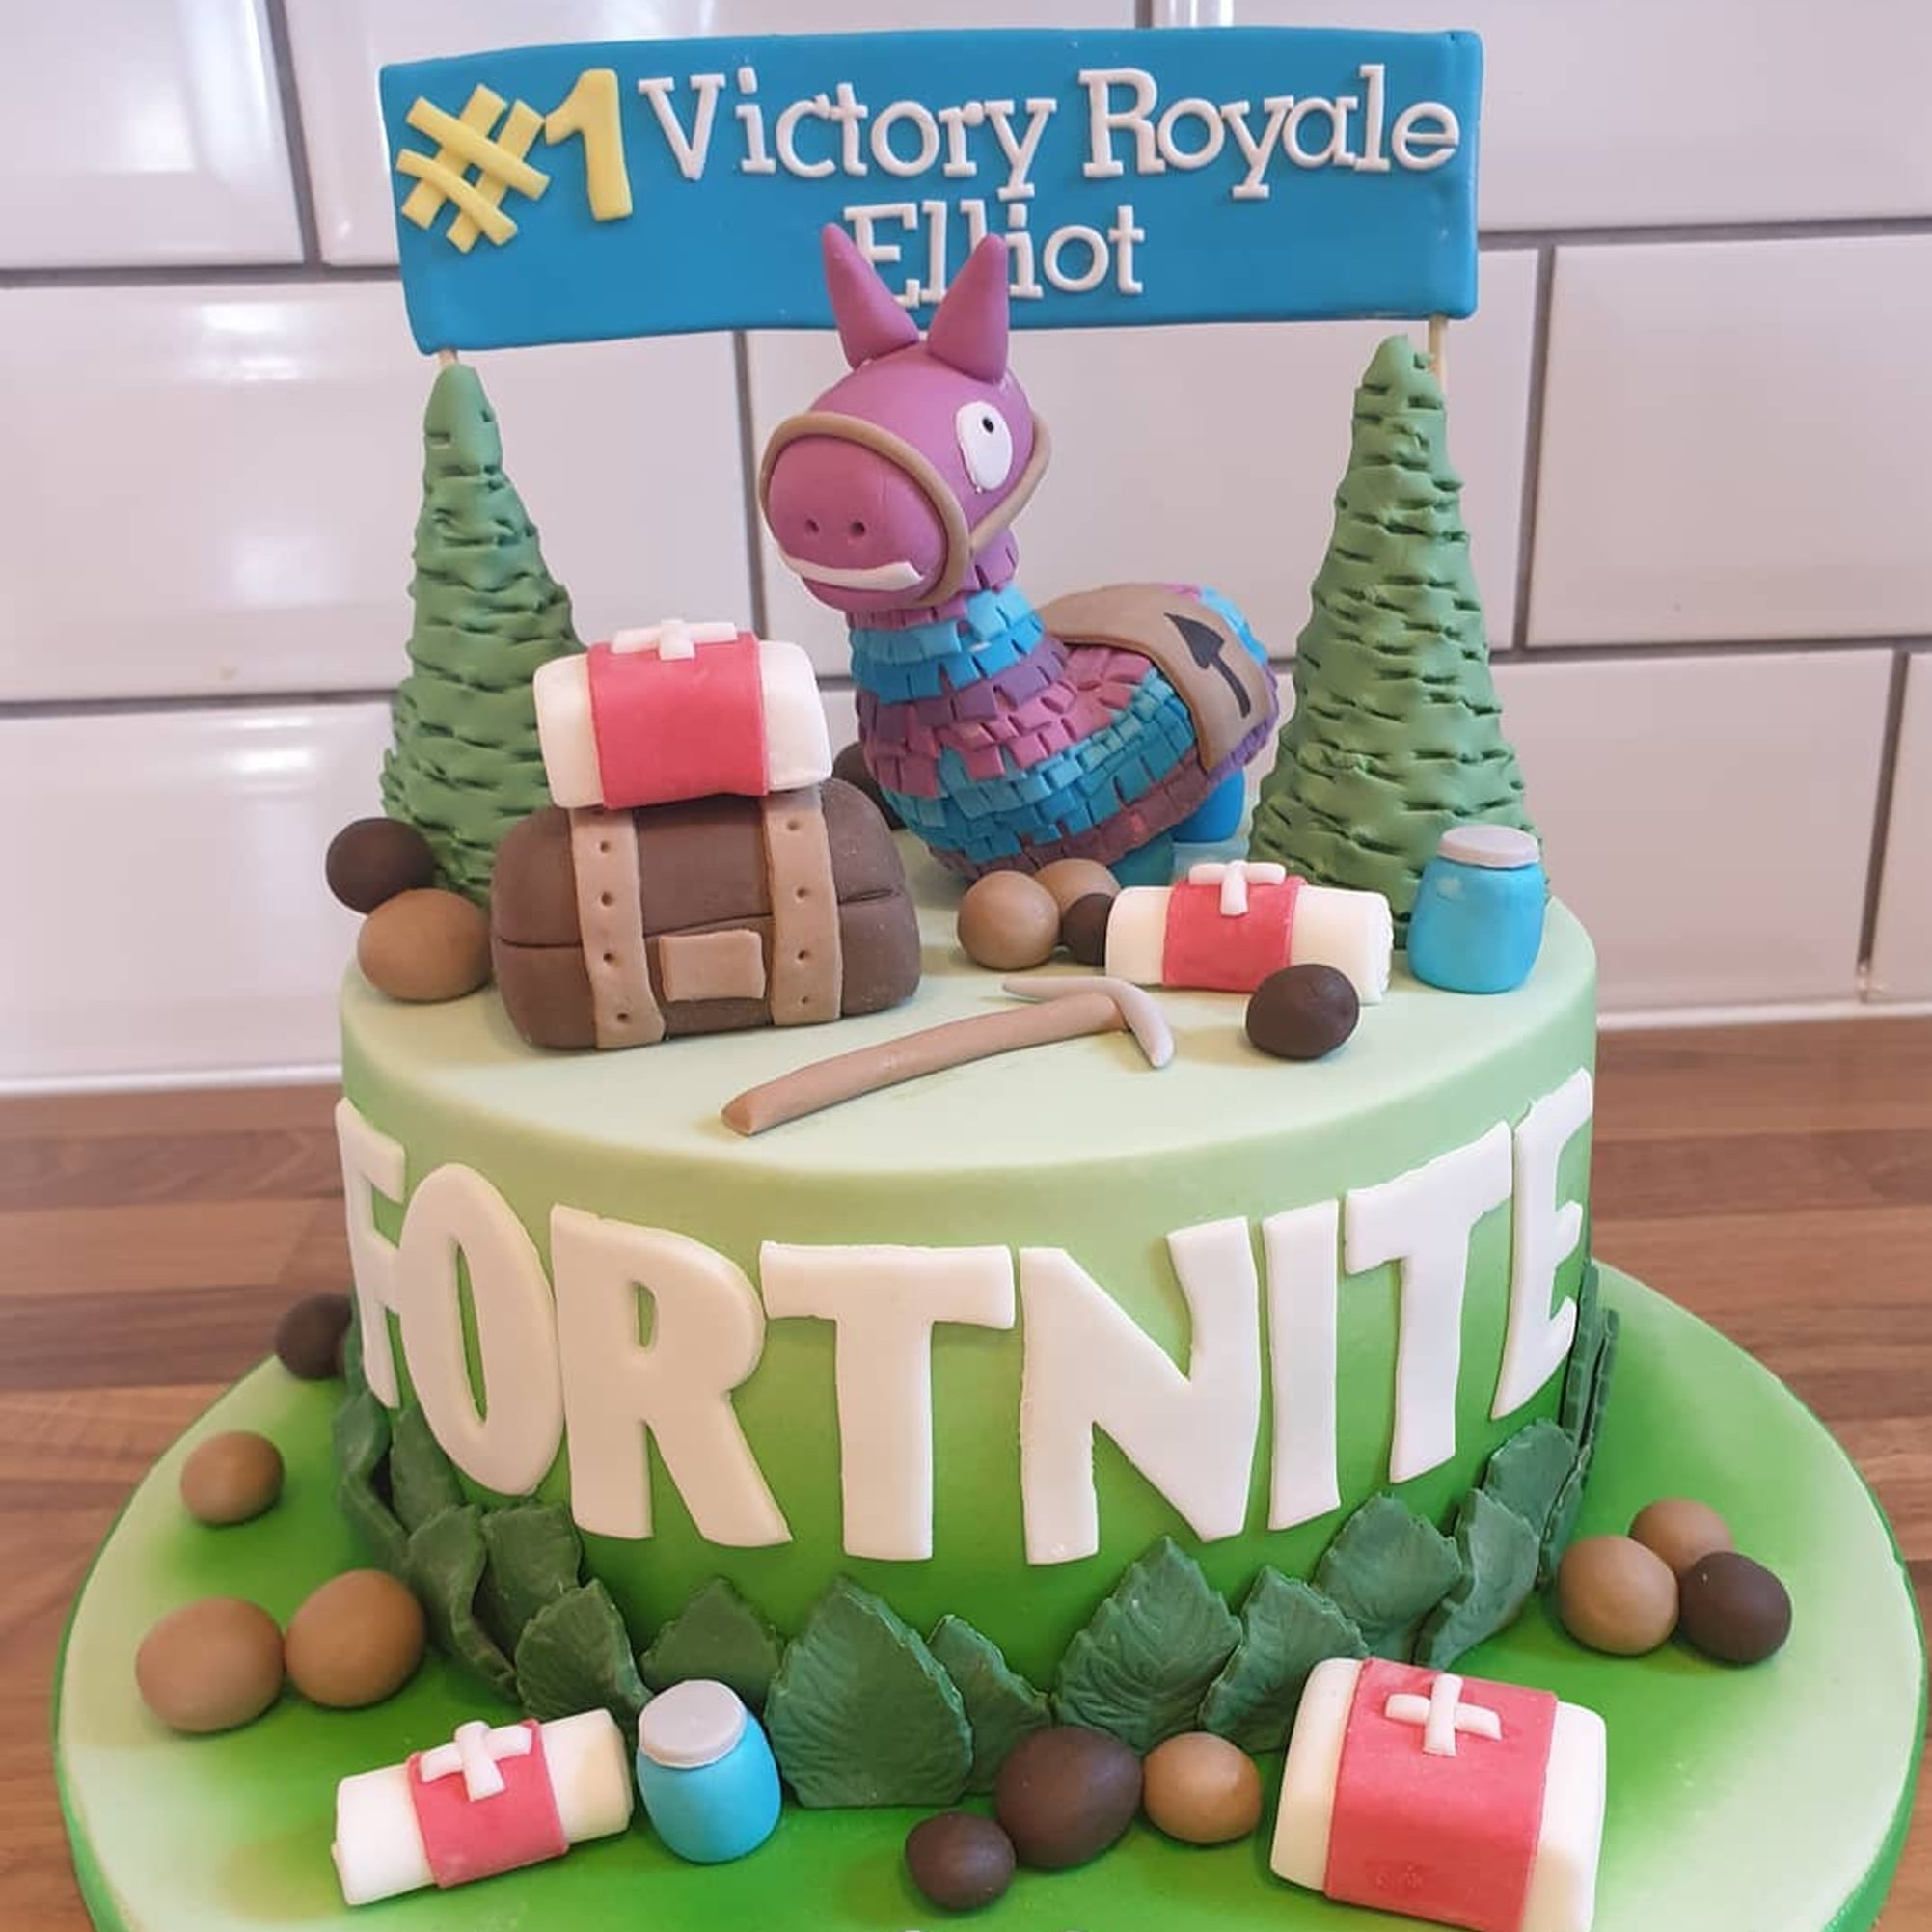 Fortnite Birthday Cakes Popsugar Family These fortnite cake ideas will attract your guests like llama loot! fortnite birthday cakes popsugar family